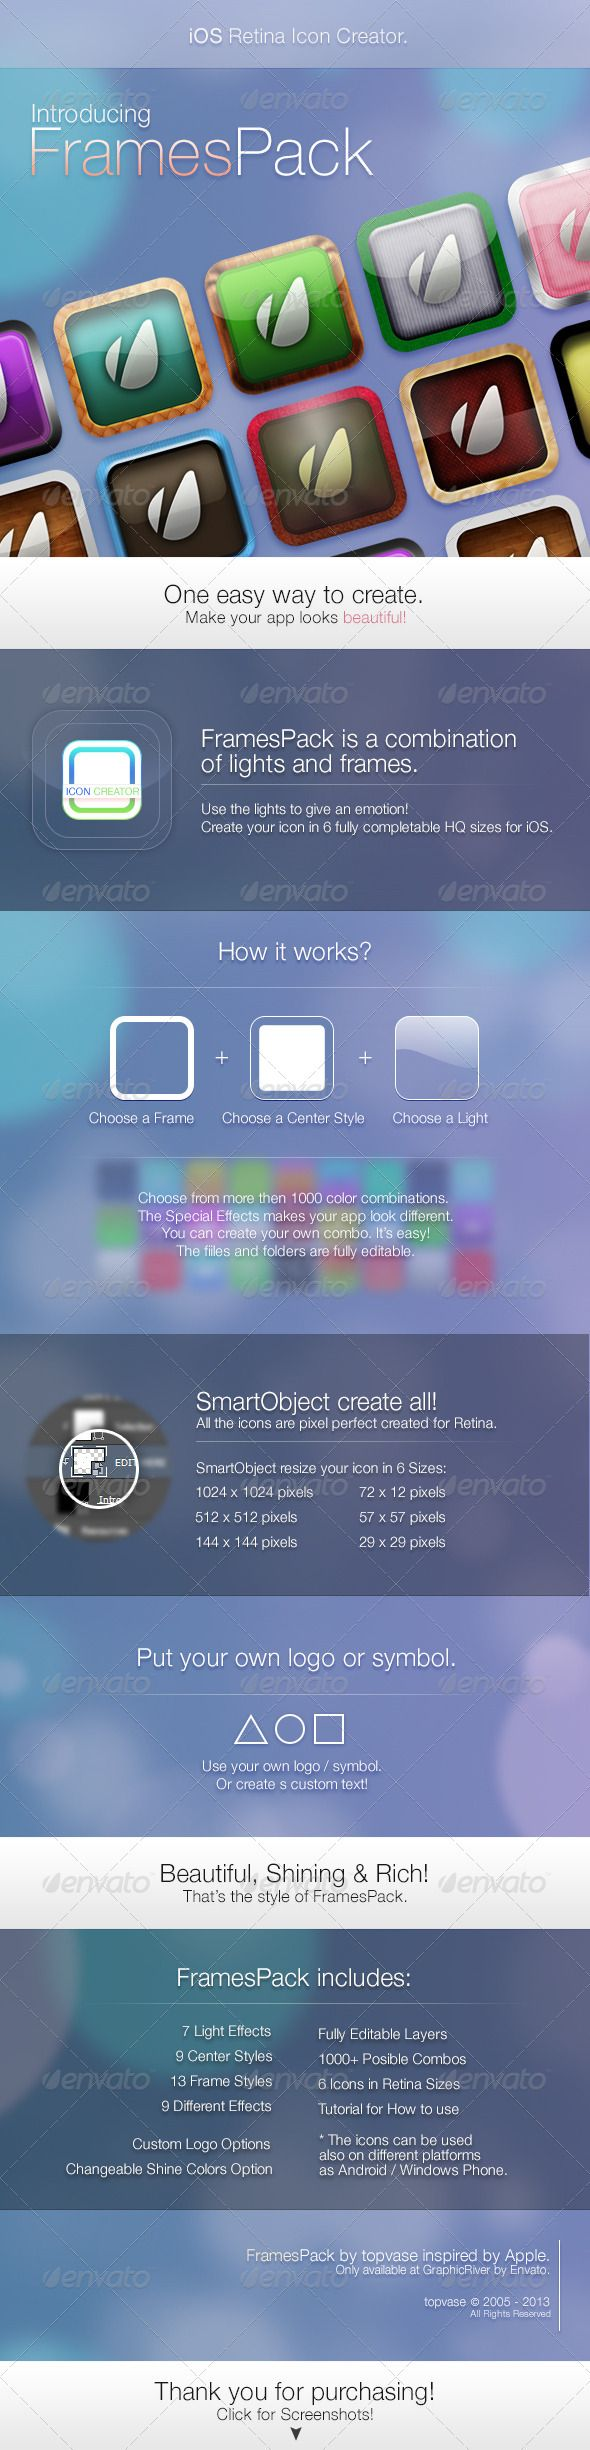 iOS Retina Icon Creator  #GraphicRiver        Need Help? Please feel free to contact me any time if you need my help by using the FAQ Form in the item details or by the comment section. Thank you for purchasing! And don't forget to rate!      Created: 12February13 GraphicsFilesIncluded: PhotoshopPSD HighResolution: Yes Layered: Yes MinimumAdobeCSVersion: CS5 PixelDimensions: 1024x1024 Tags: android #app #appicon #apple #beautiful #carbon #create #creator #design #frames #glass #glossy #hq…